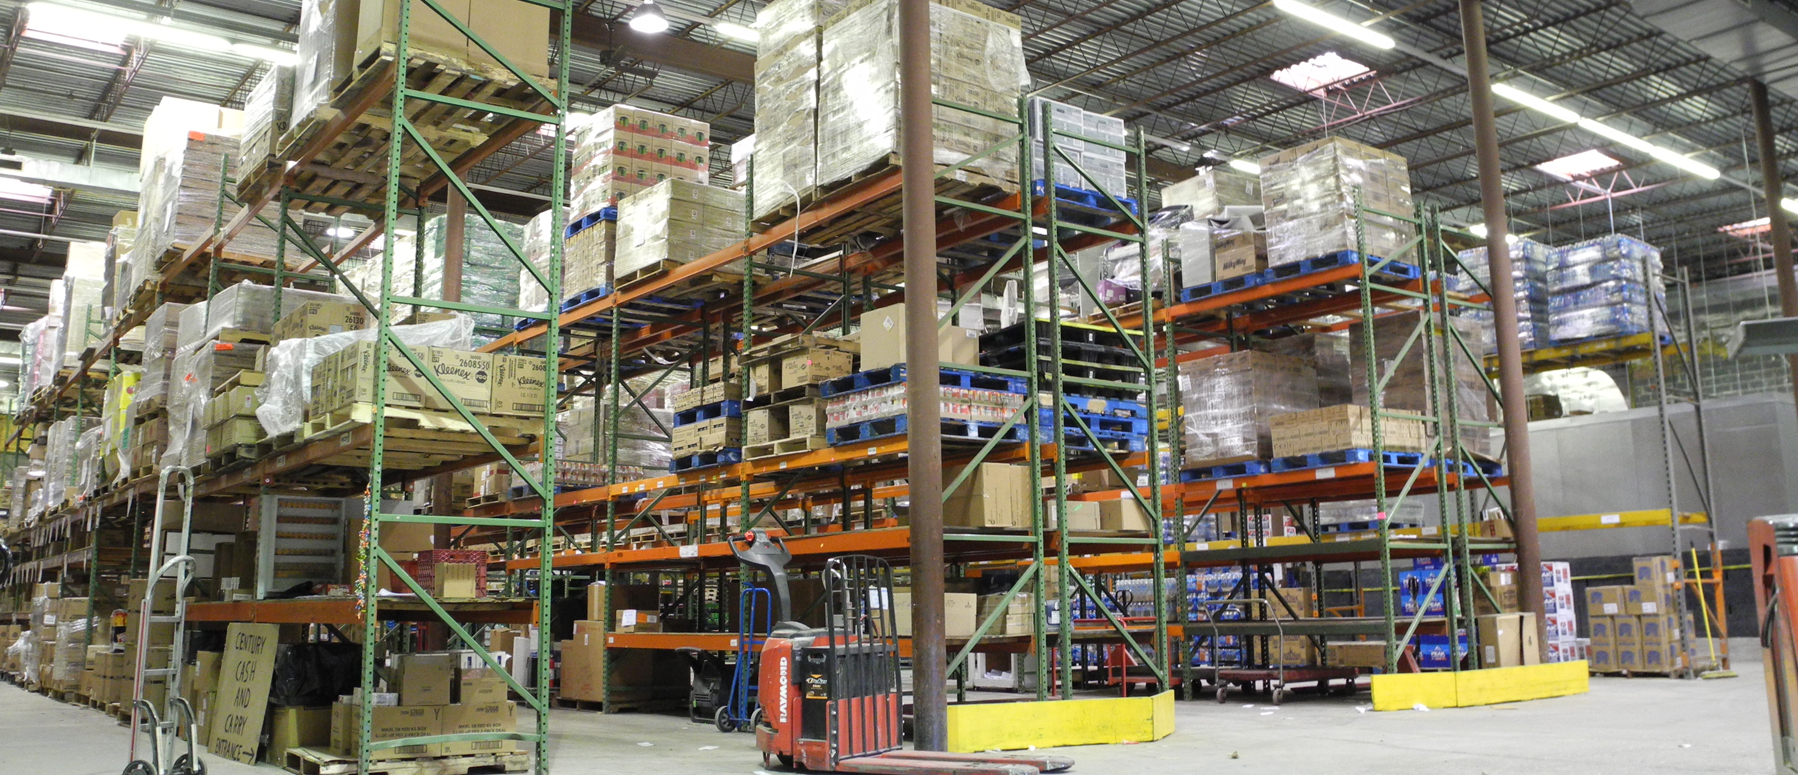 Panoramic view of the inside of Century Distributors' warehouse